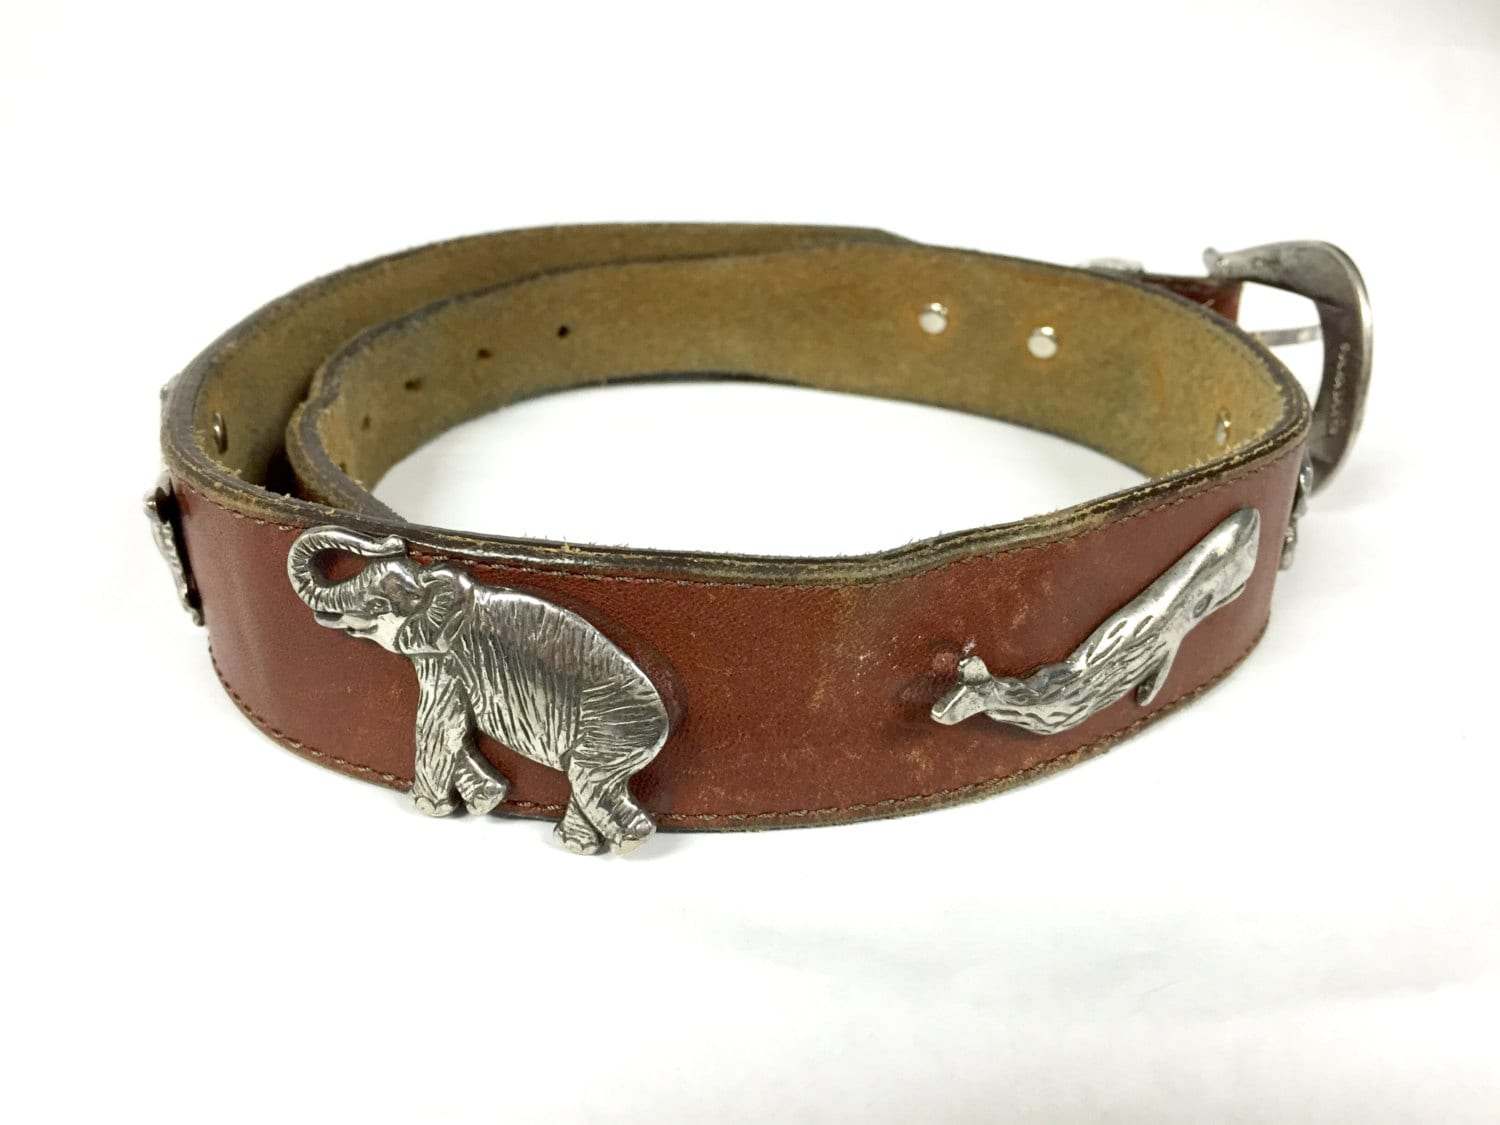 brighton honest belt brown leather with 8 solid brass